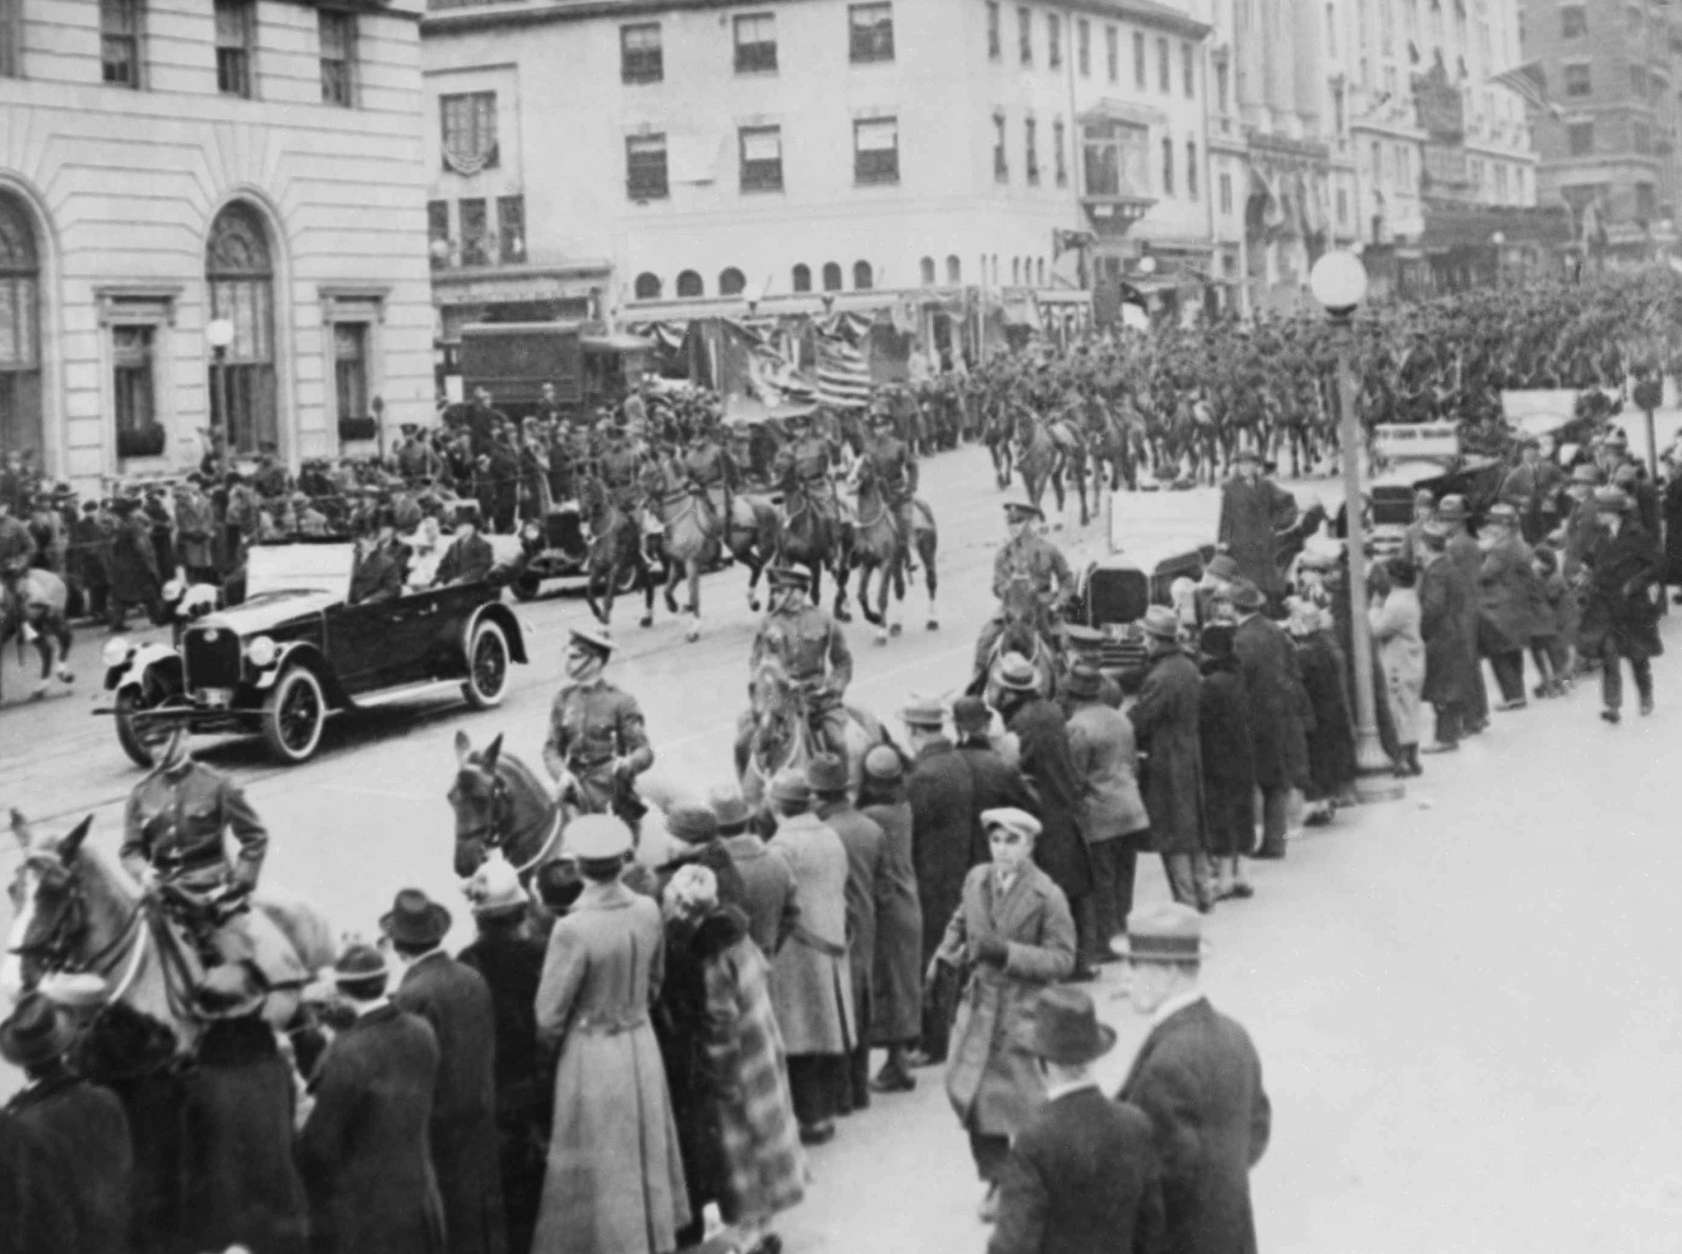 This photo shows the inauguration parade for Pres. Calvin Coolidge, March 4, 1925, Washington, D.C. (AP Photo)